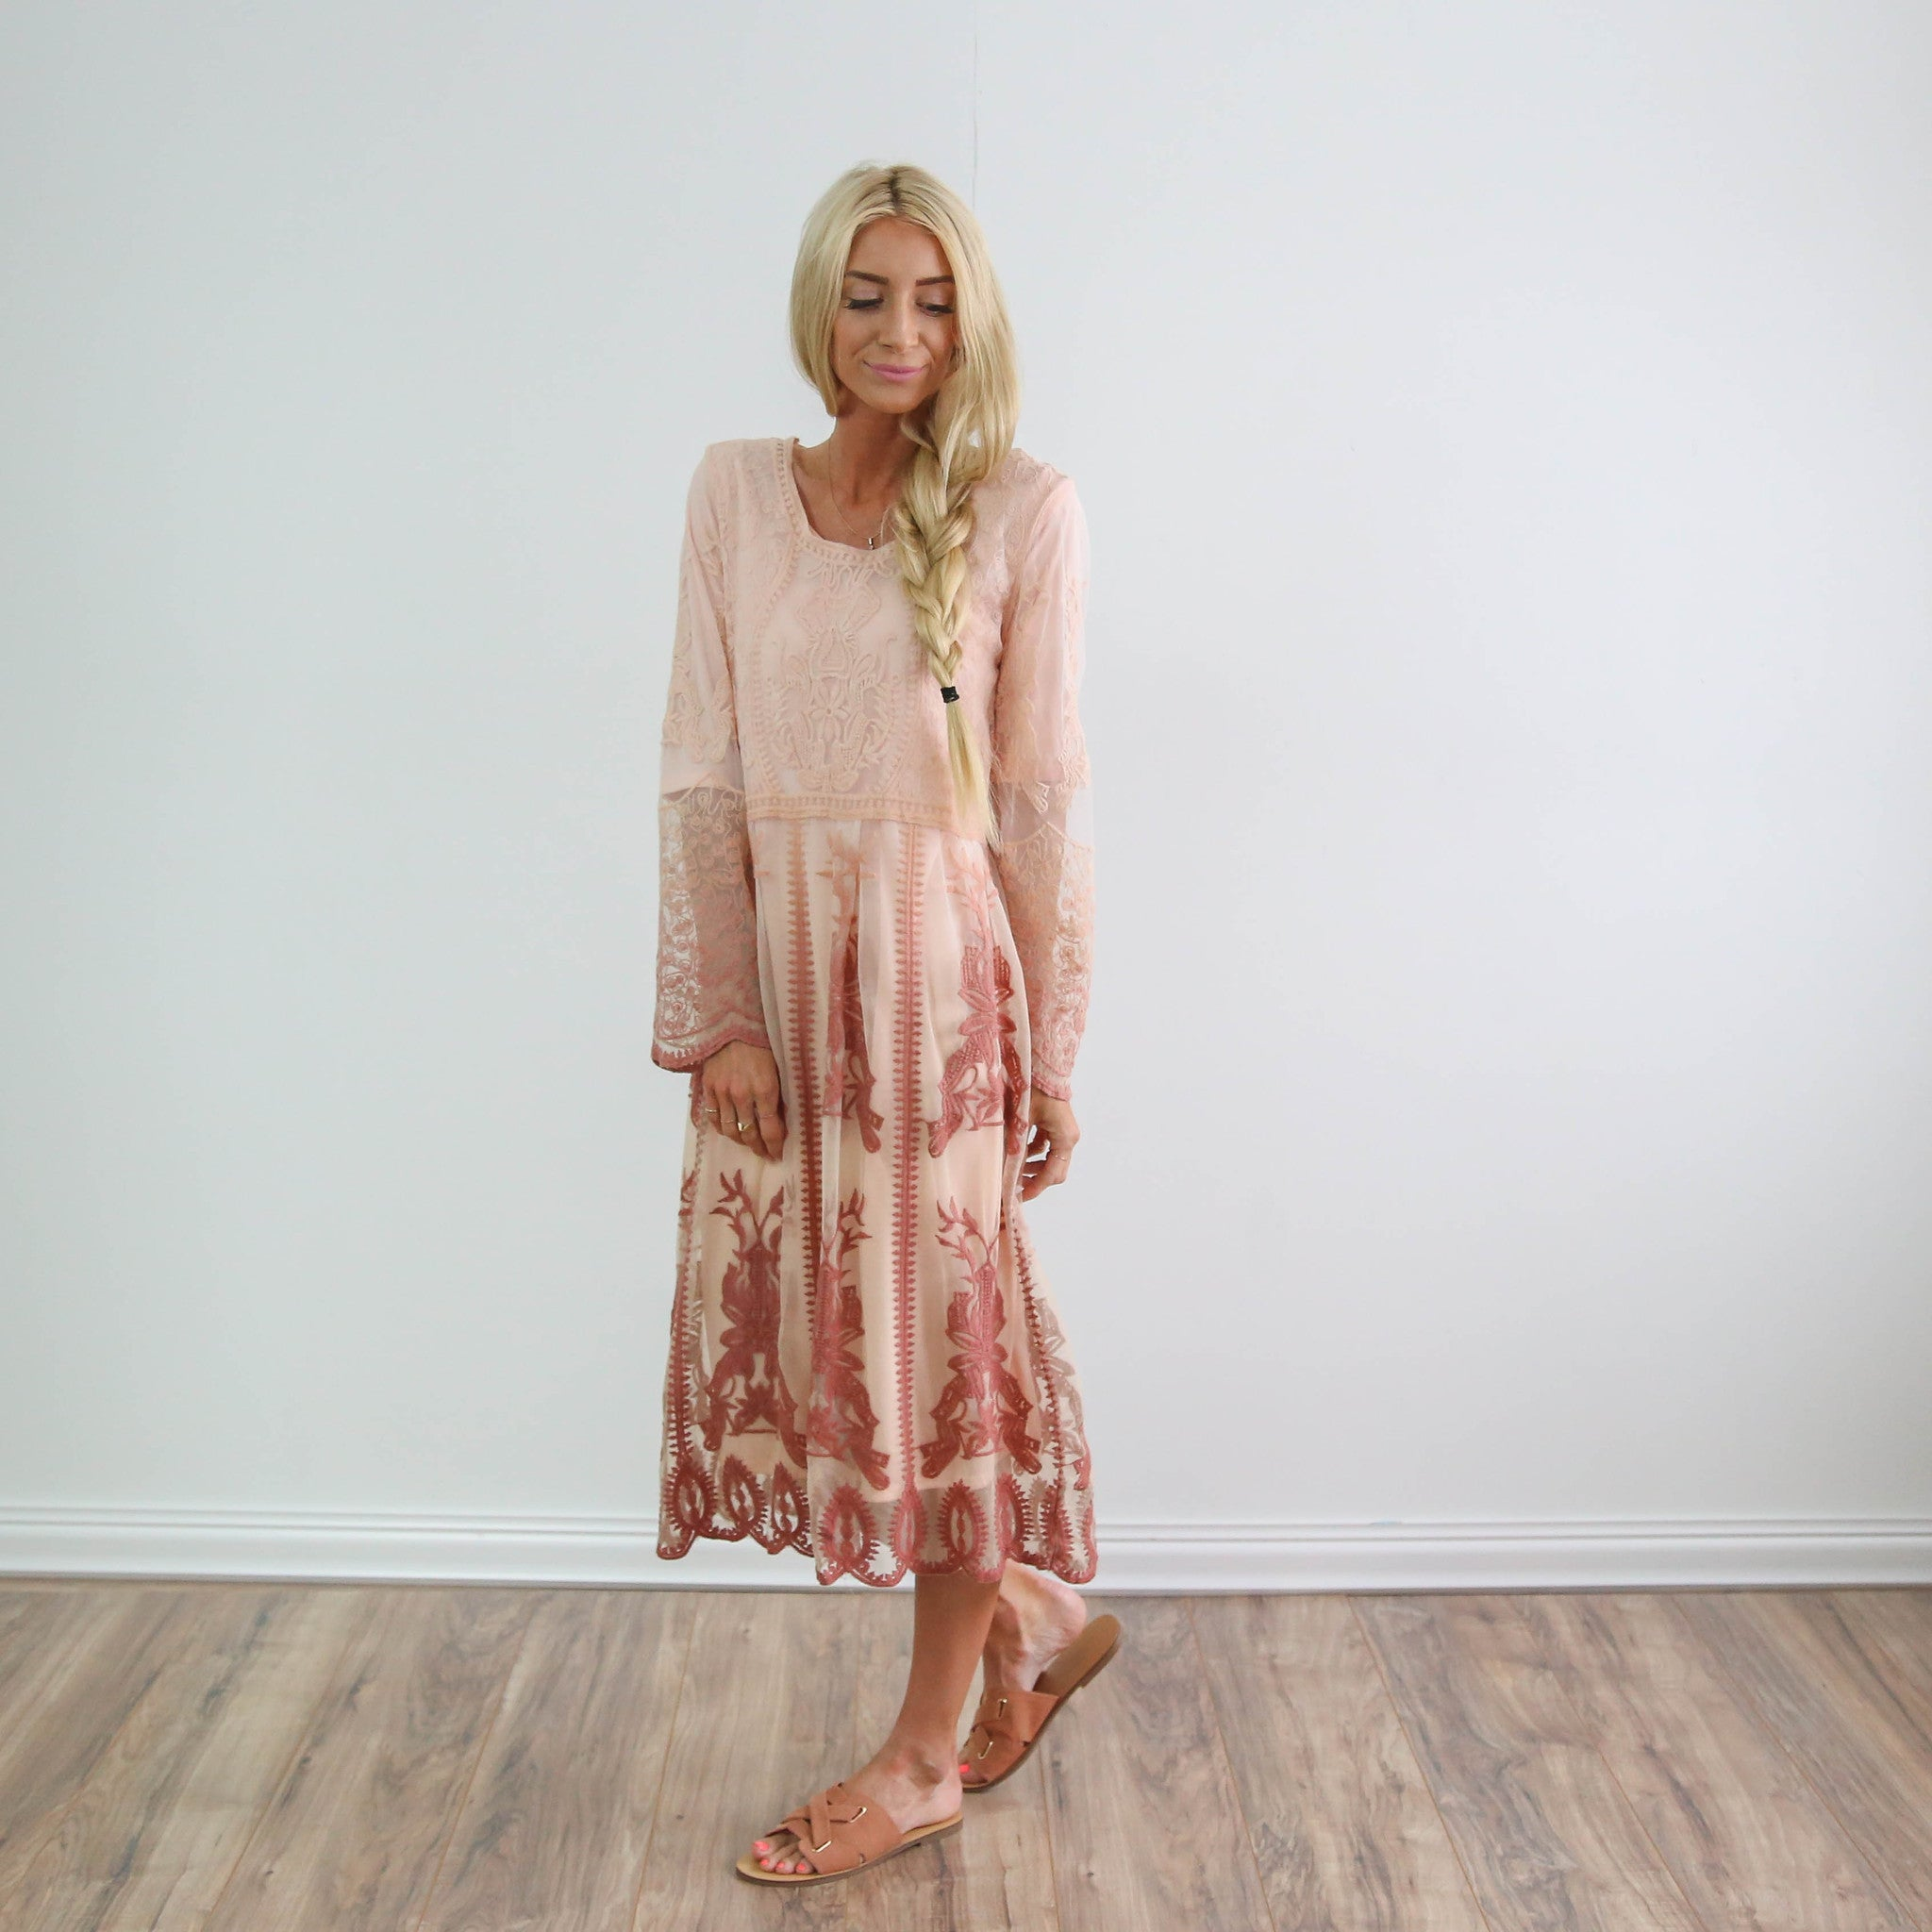 Ombre Pink Lace Dress